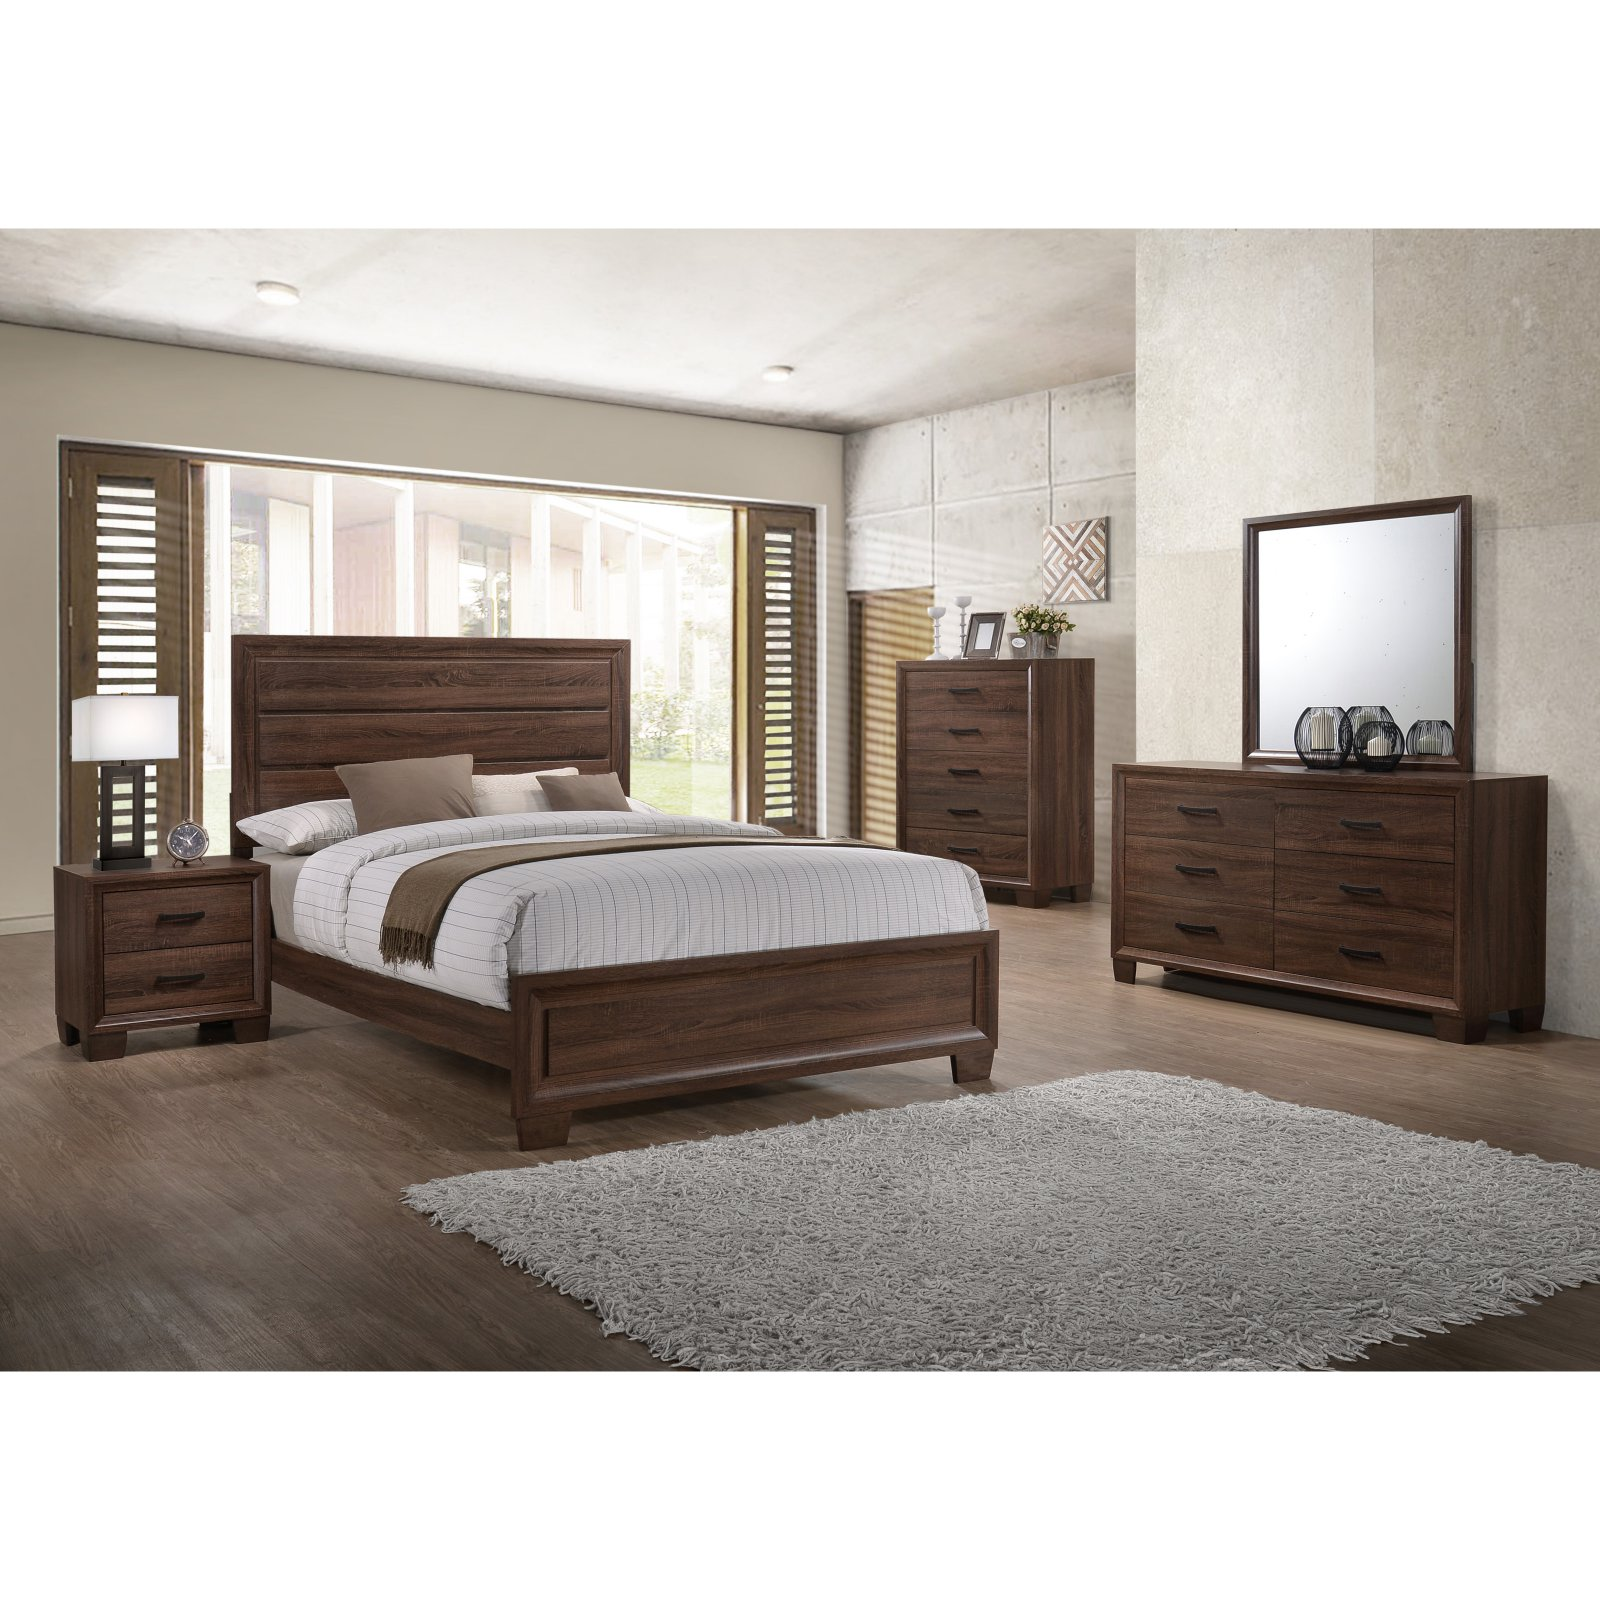 Coaster Furniture Brandon Panel Bed